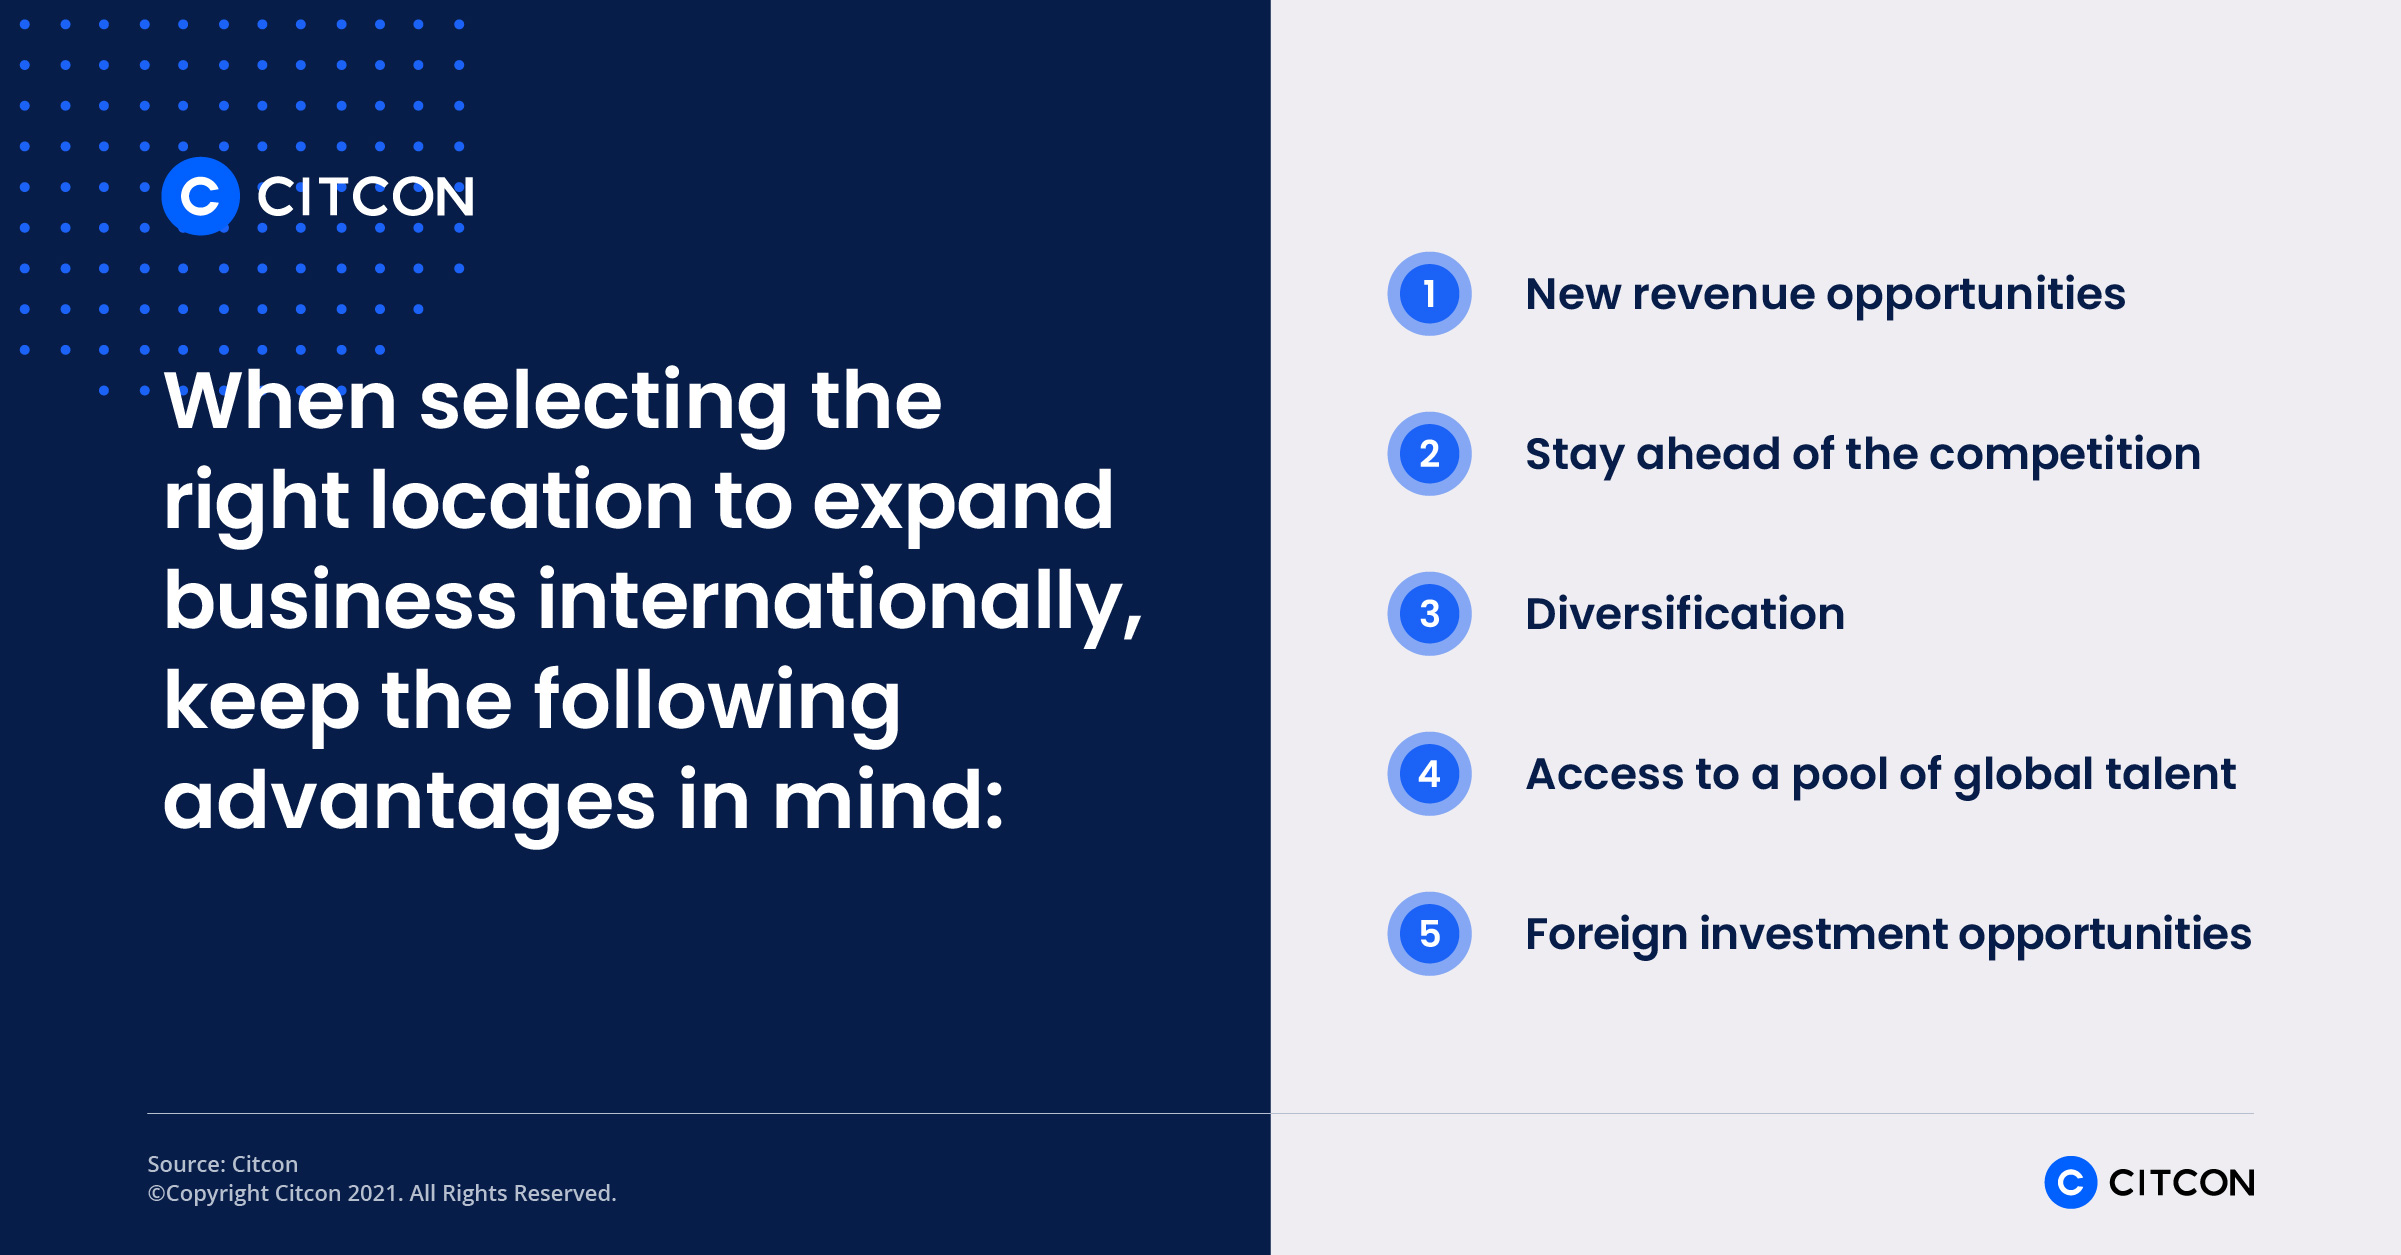 When selecting the right location to expand business internationally, keep these five advantages in mind.